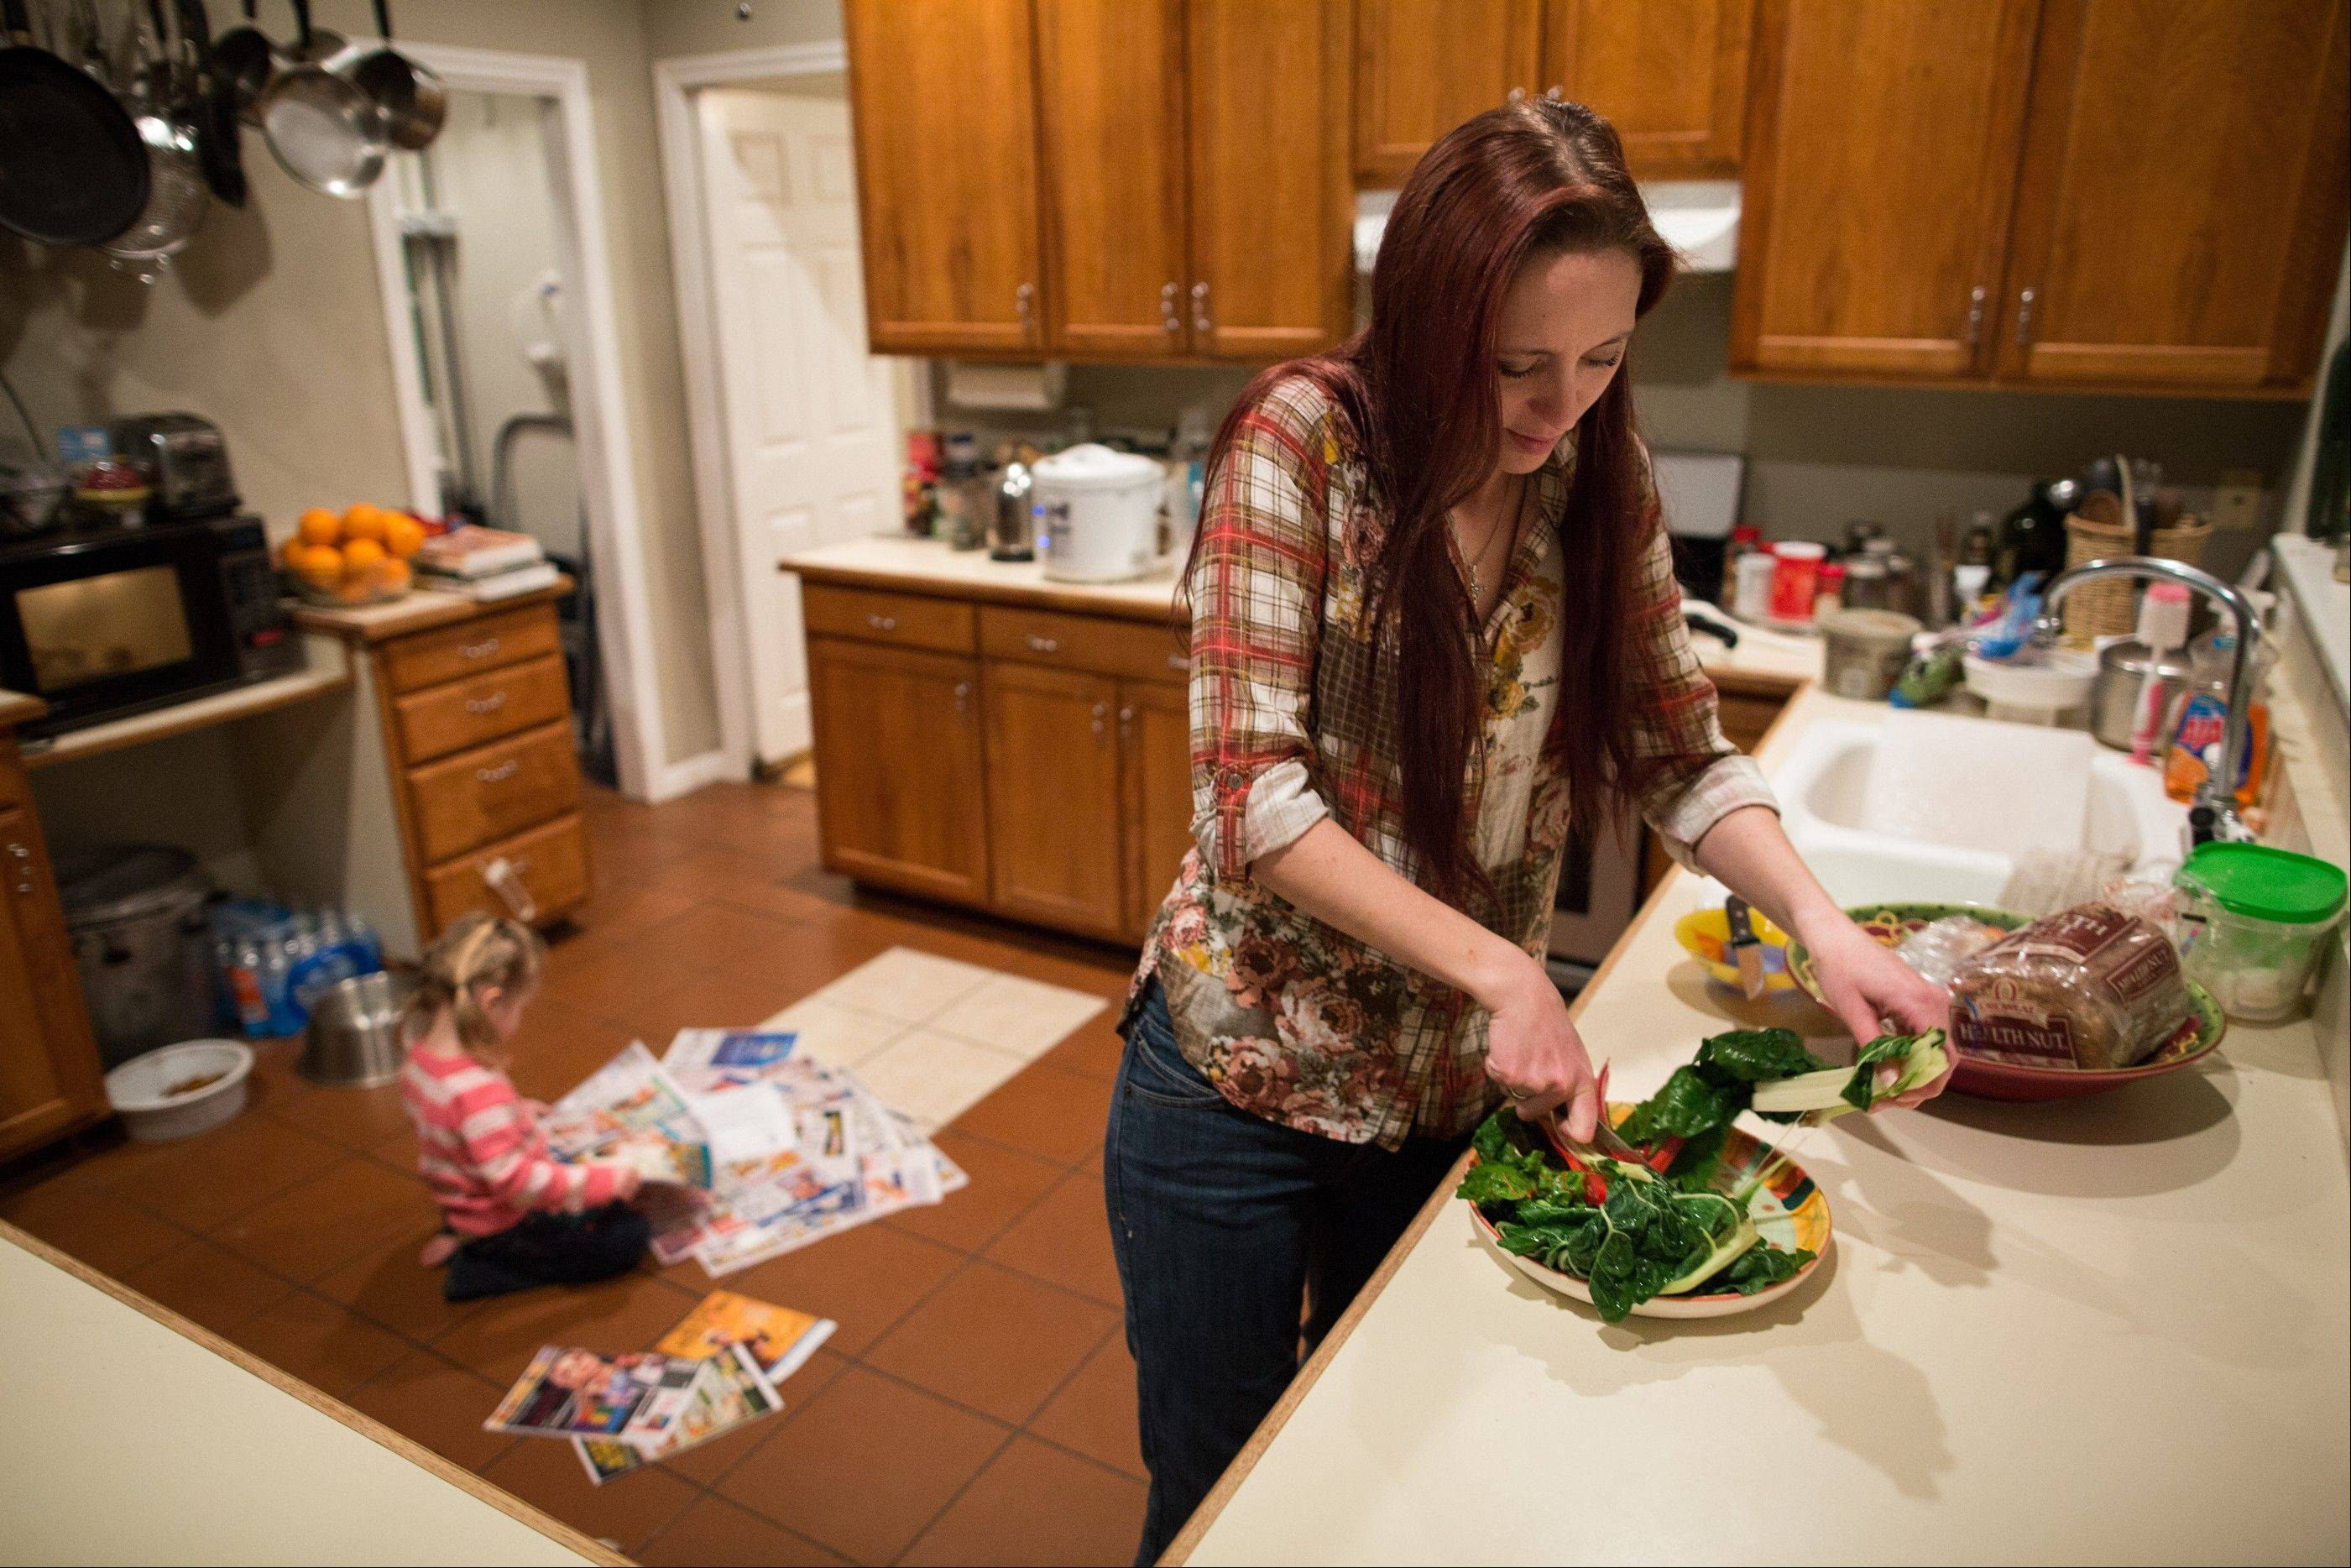 Maggie Barcellano prepares dinner at her father�s house in Austin, Texas. Barcellano, who lives with her father, enrolled in the food stamps program to help save up for paramedic training while she works as a home health aide and raises her three-year-old daughter.